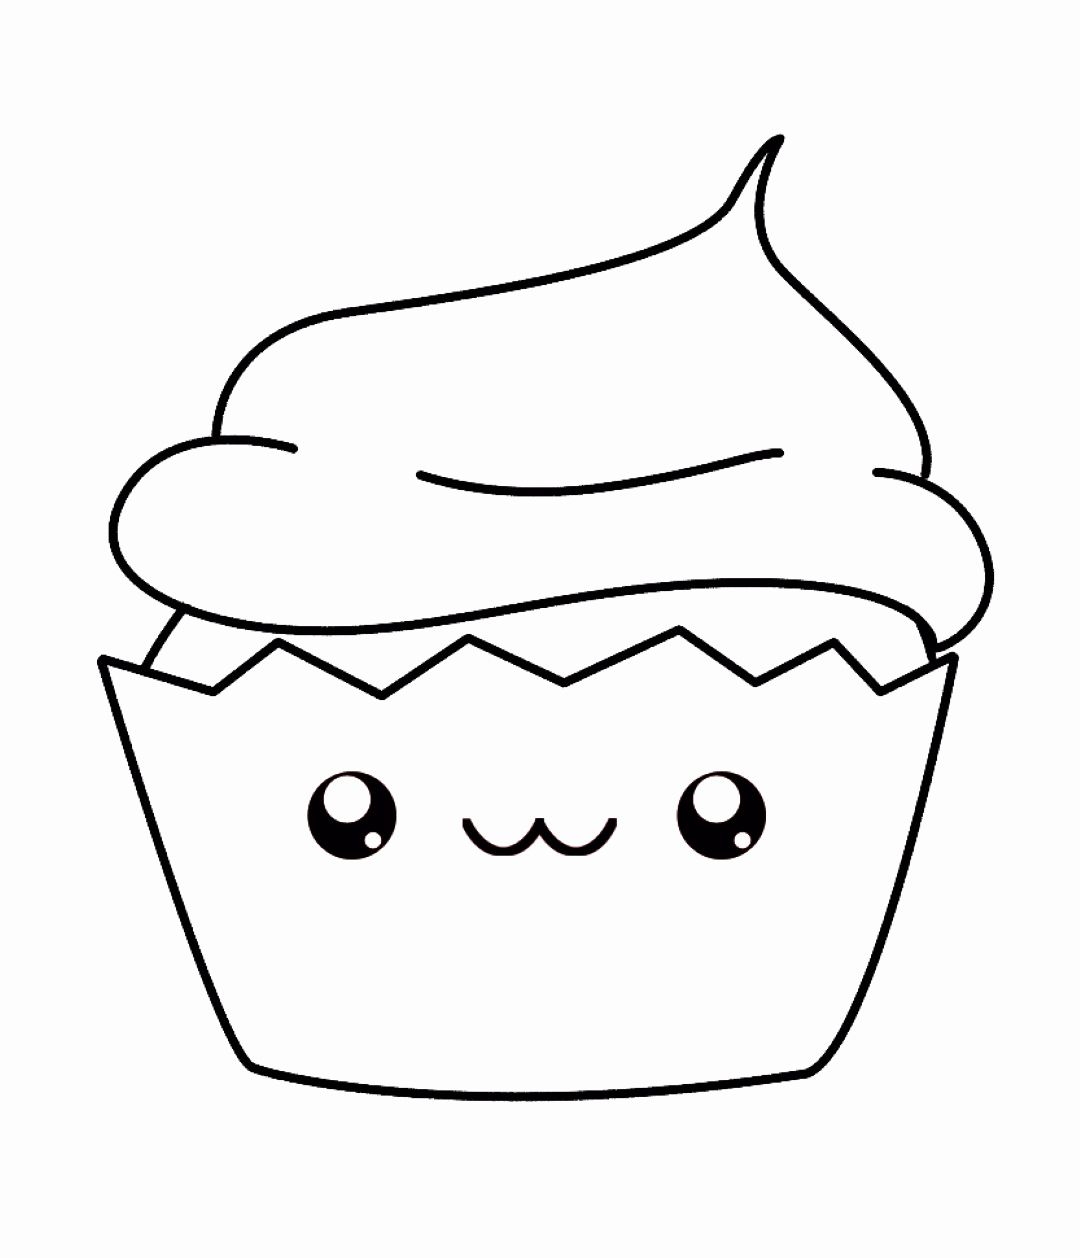 Cute Kawaii Animal Coloring Pages Lovely 59 No Trouble Cute Cupcakes Coloring Pages With Faces In 2020 Cupcake Coloring Pages Disney Coloring Pages Cute Coloring Pages